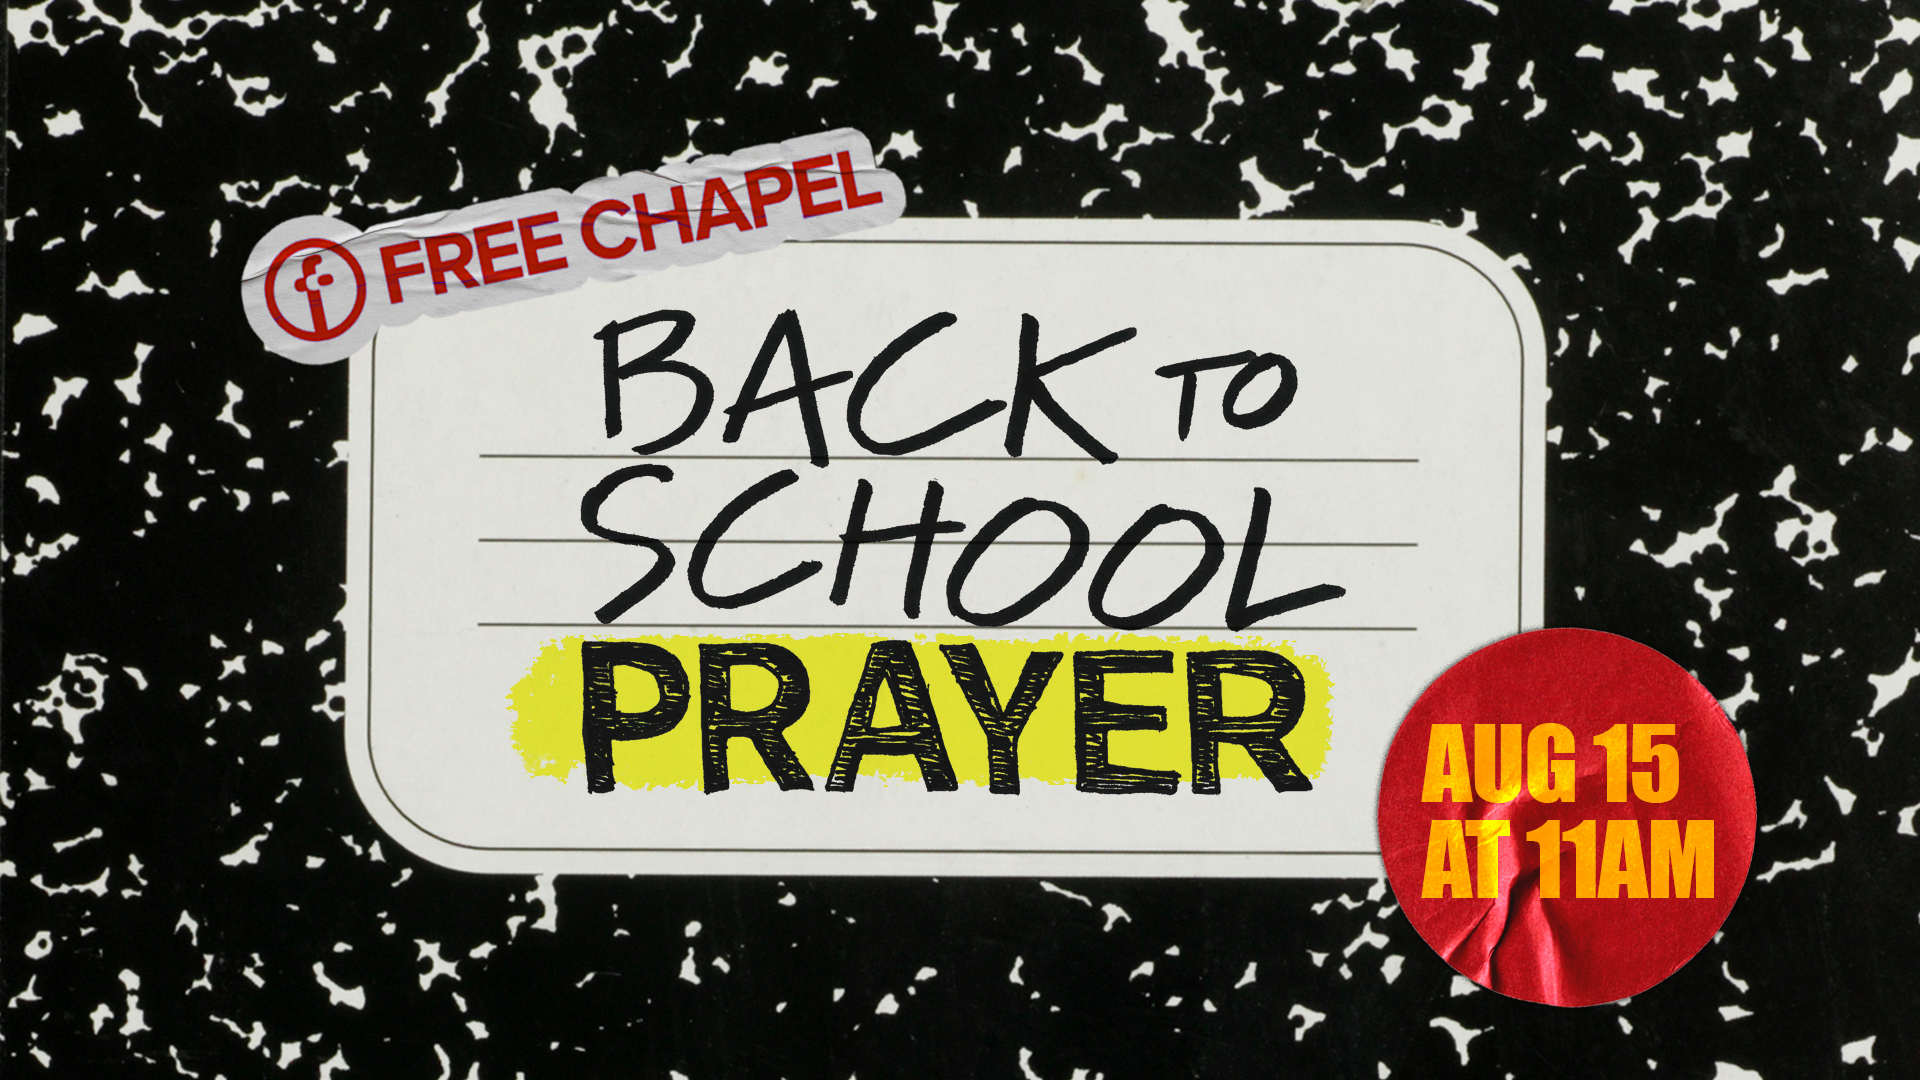 Back to School Prayer at the Spartanburg campus